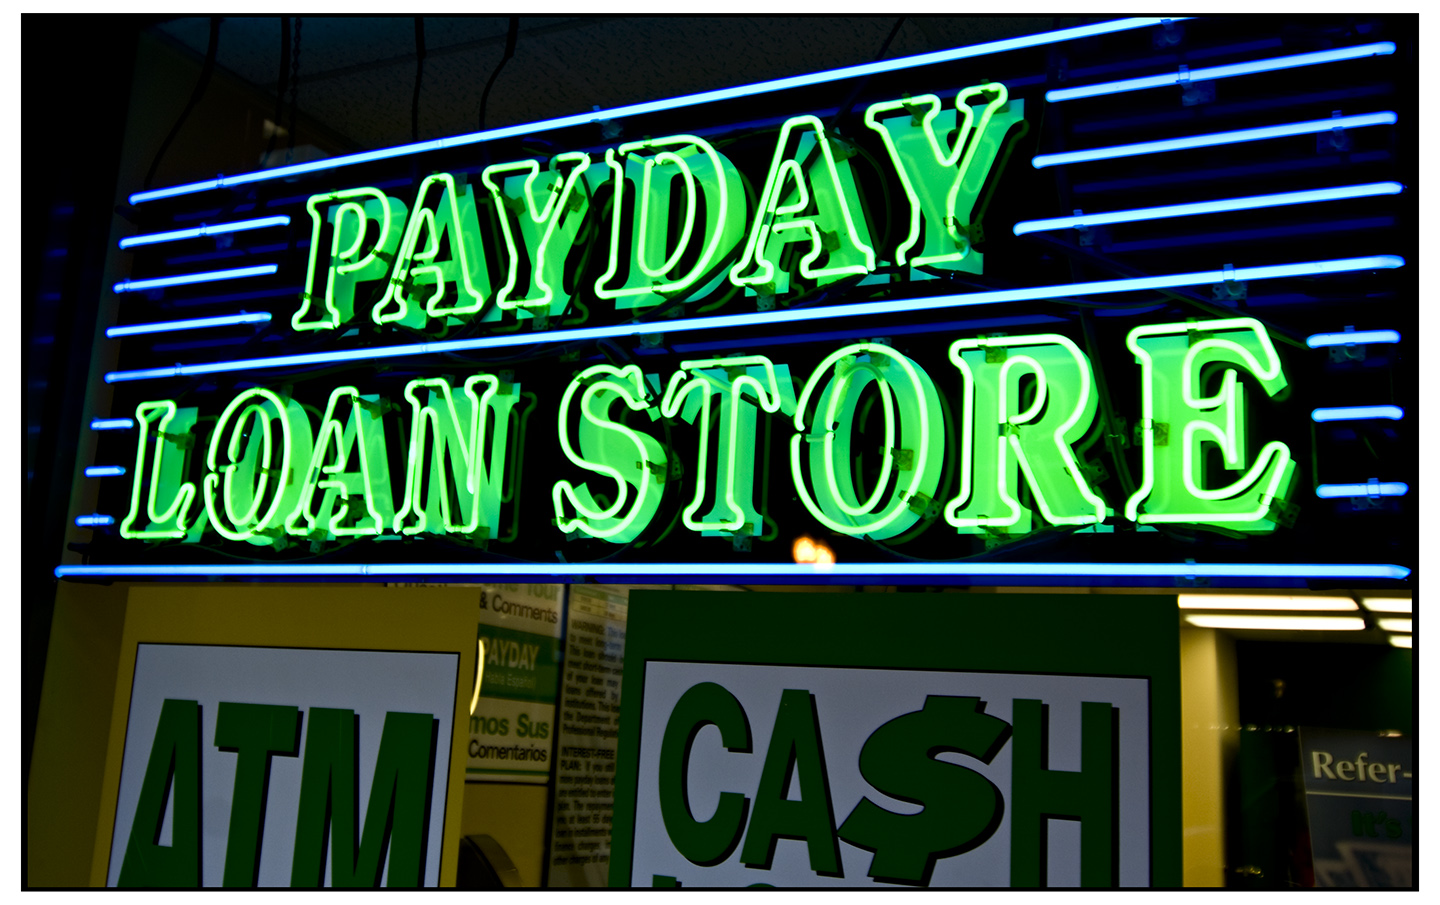 Pay day loans can assist during financial dips